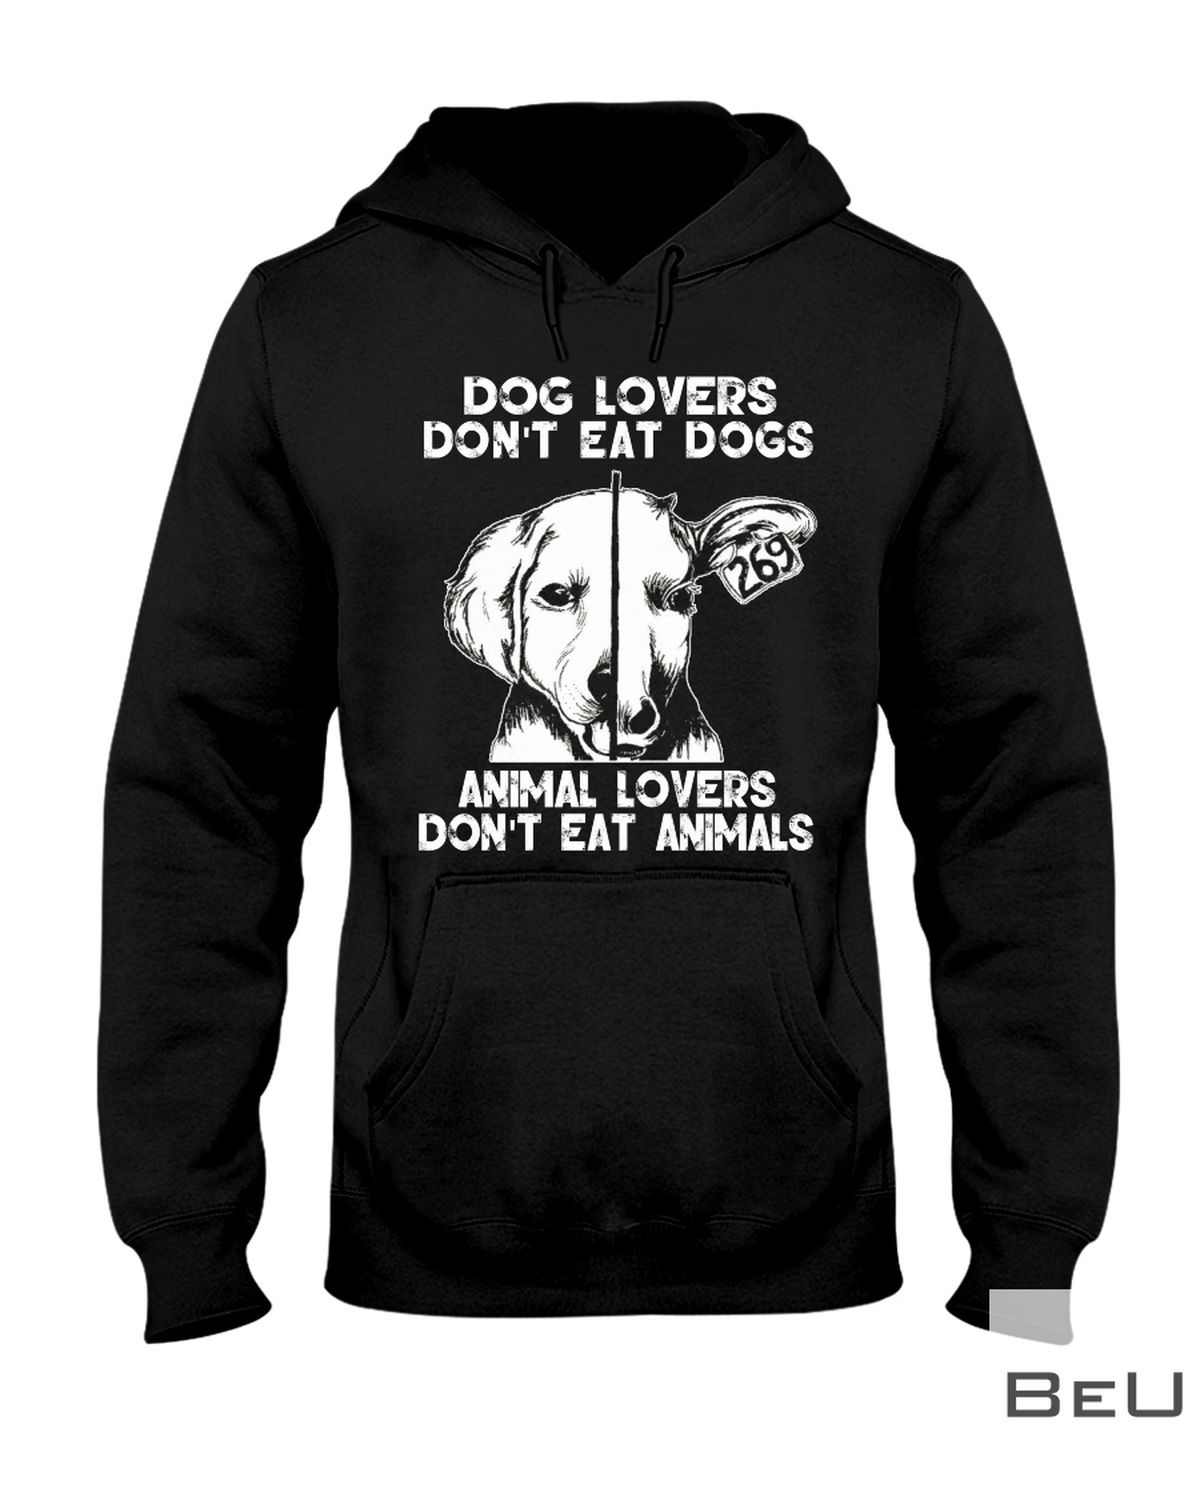 Dog Lovers Don't Eat Dogs Animal Lovers Don't Eat Animals Shirtx